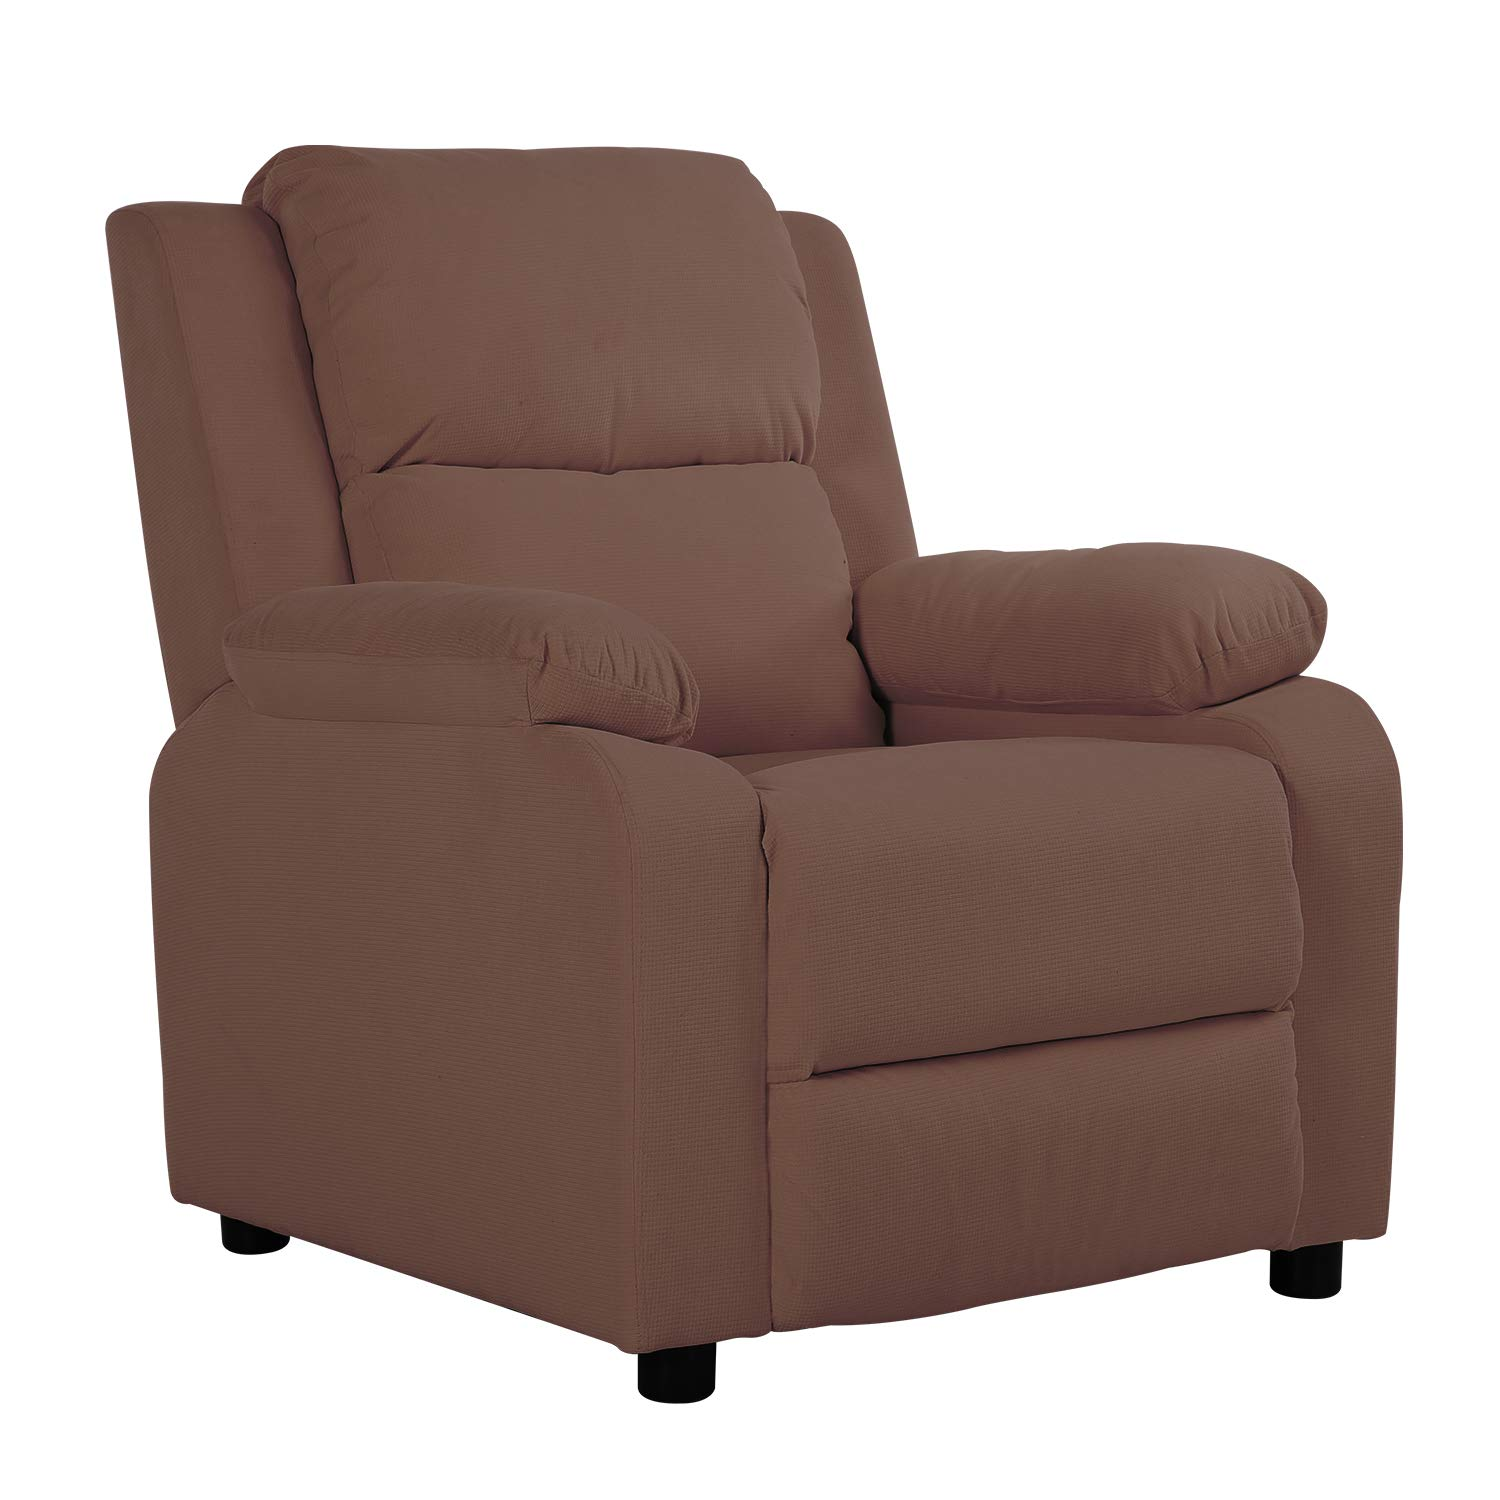 LCH LCH-PAHS1737K-BR1 Recliner, Brown by LCH